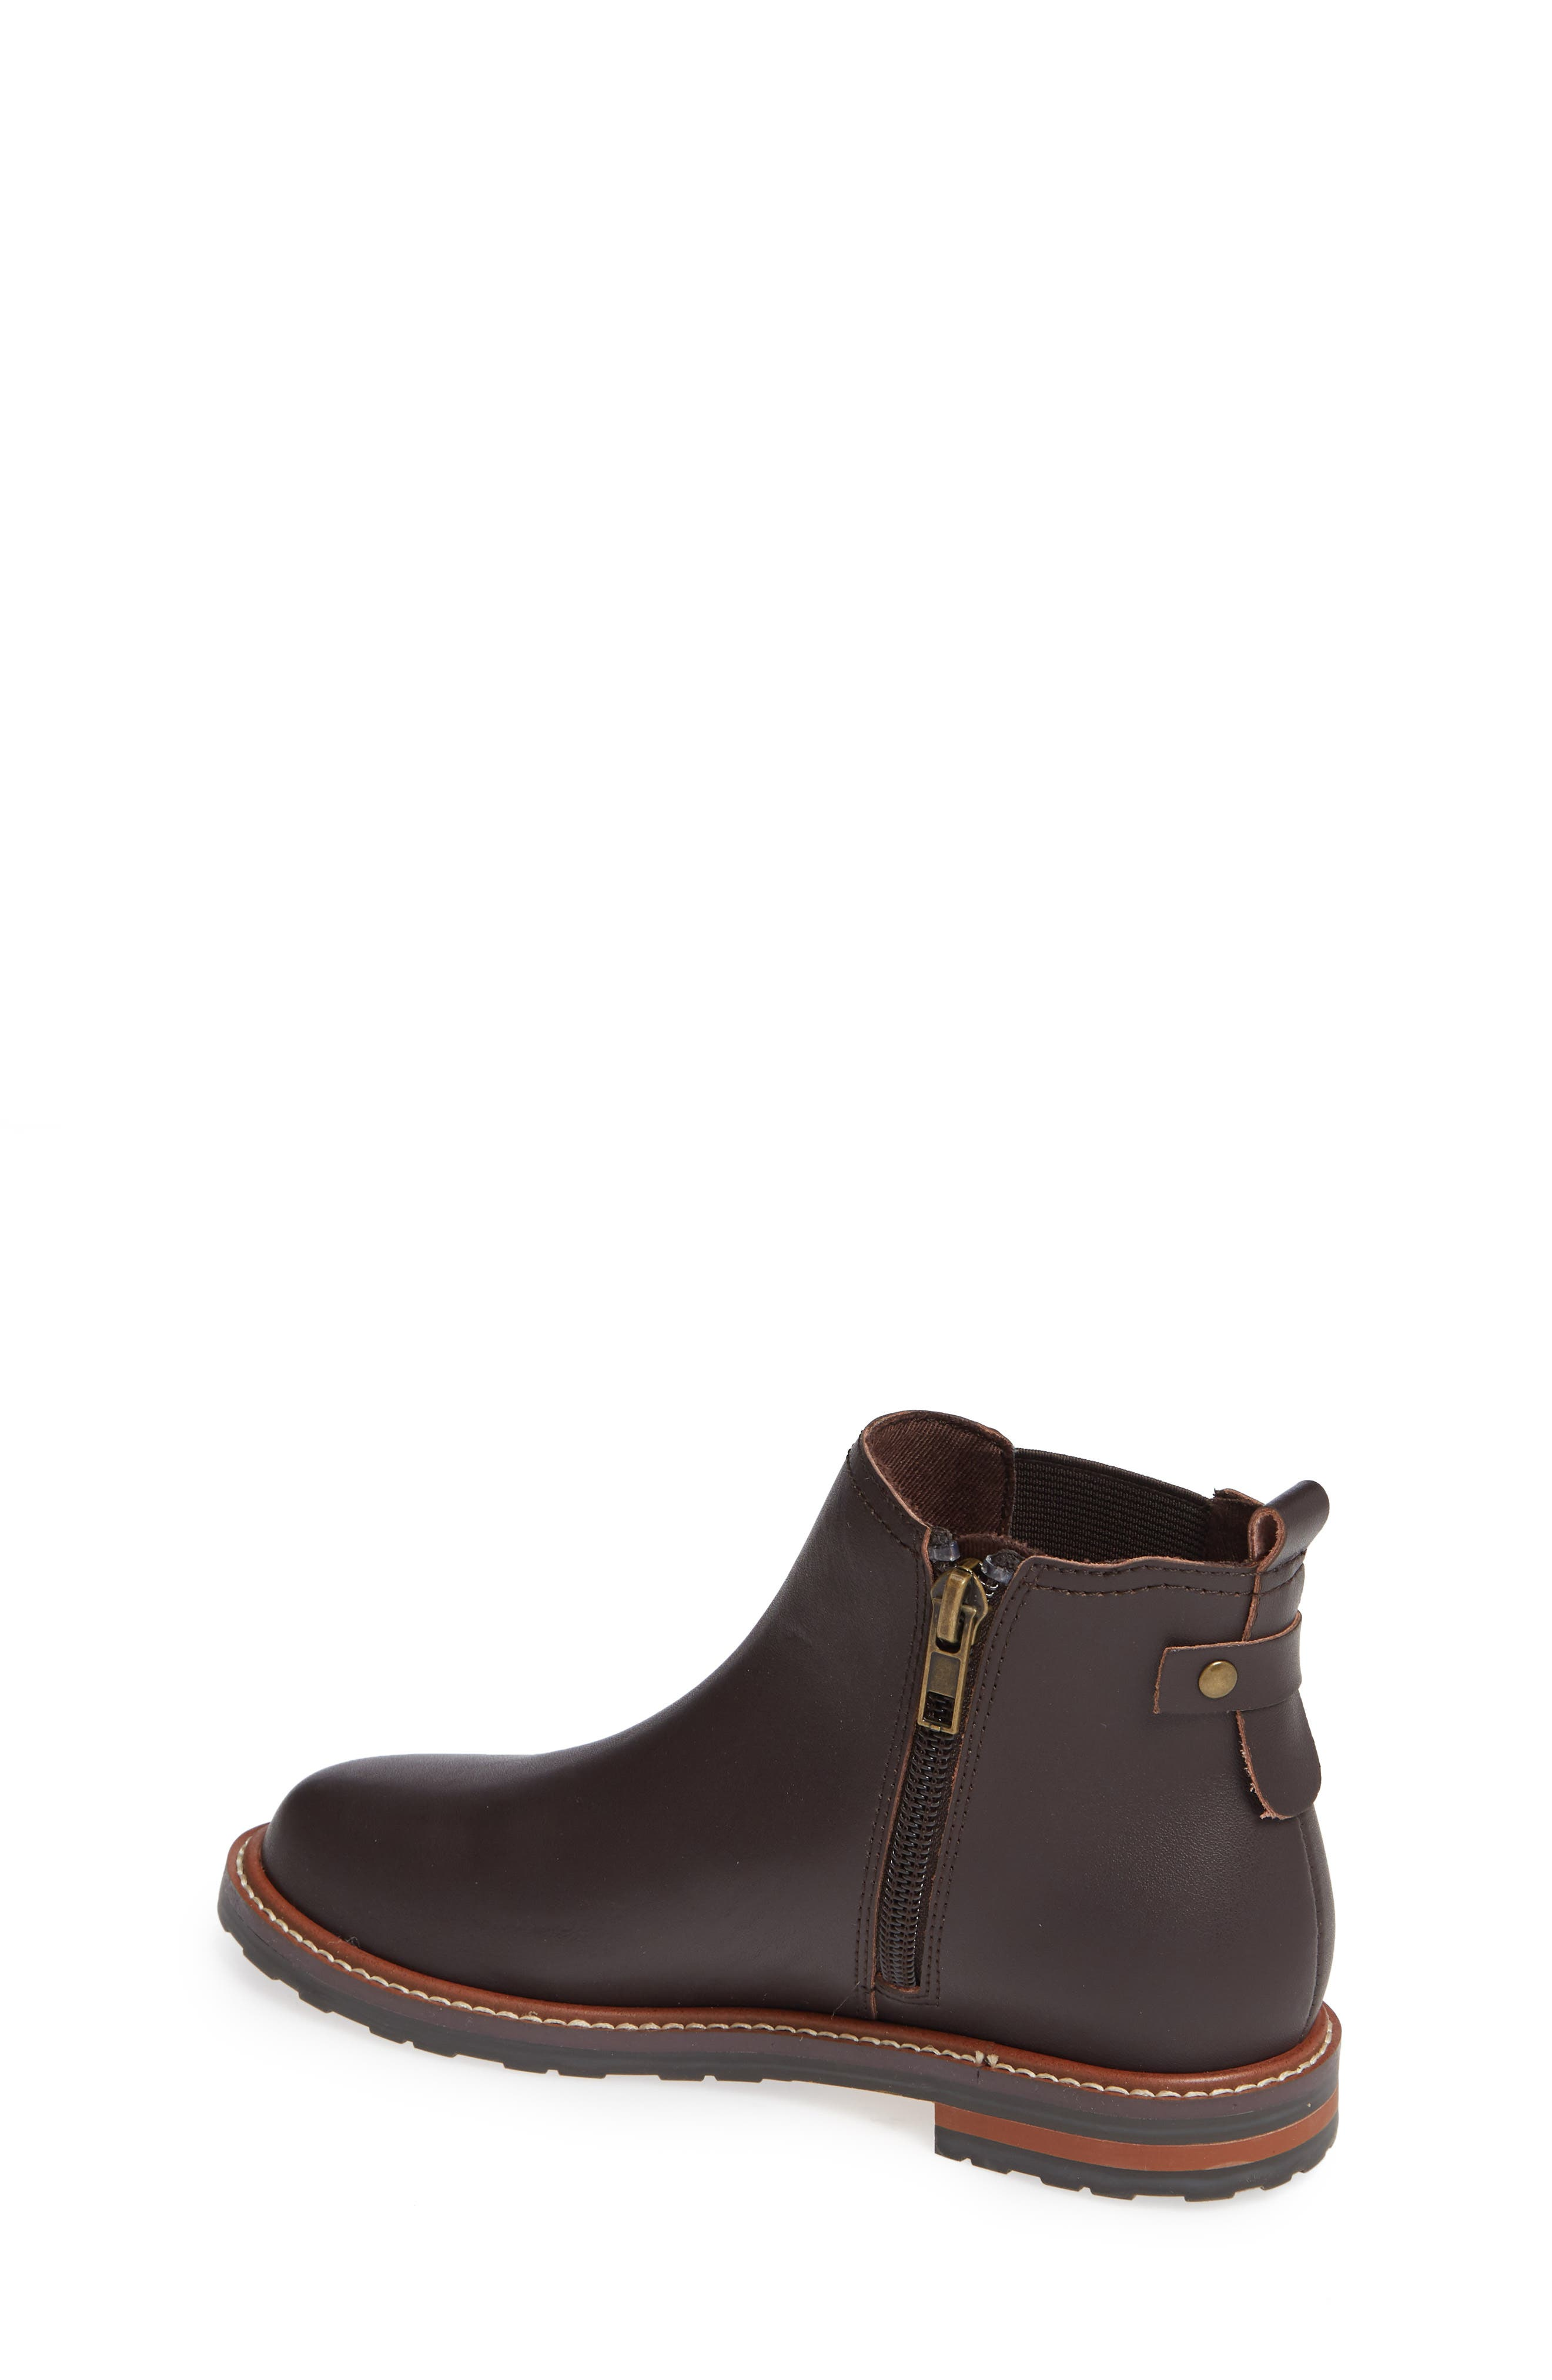 Chelsea Boot,                             Alternate thumbnail 2, color,                             CHOCOLATE OILED LEATHER